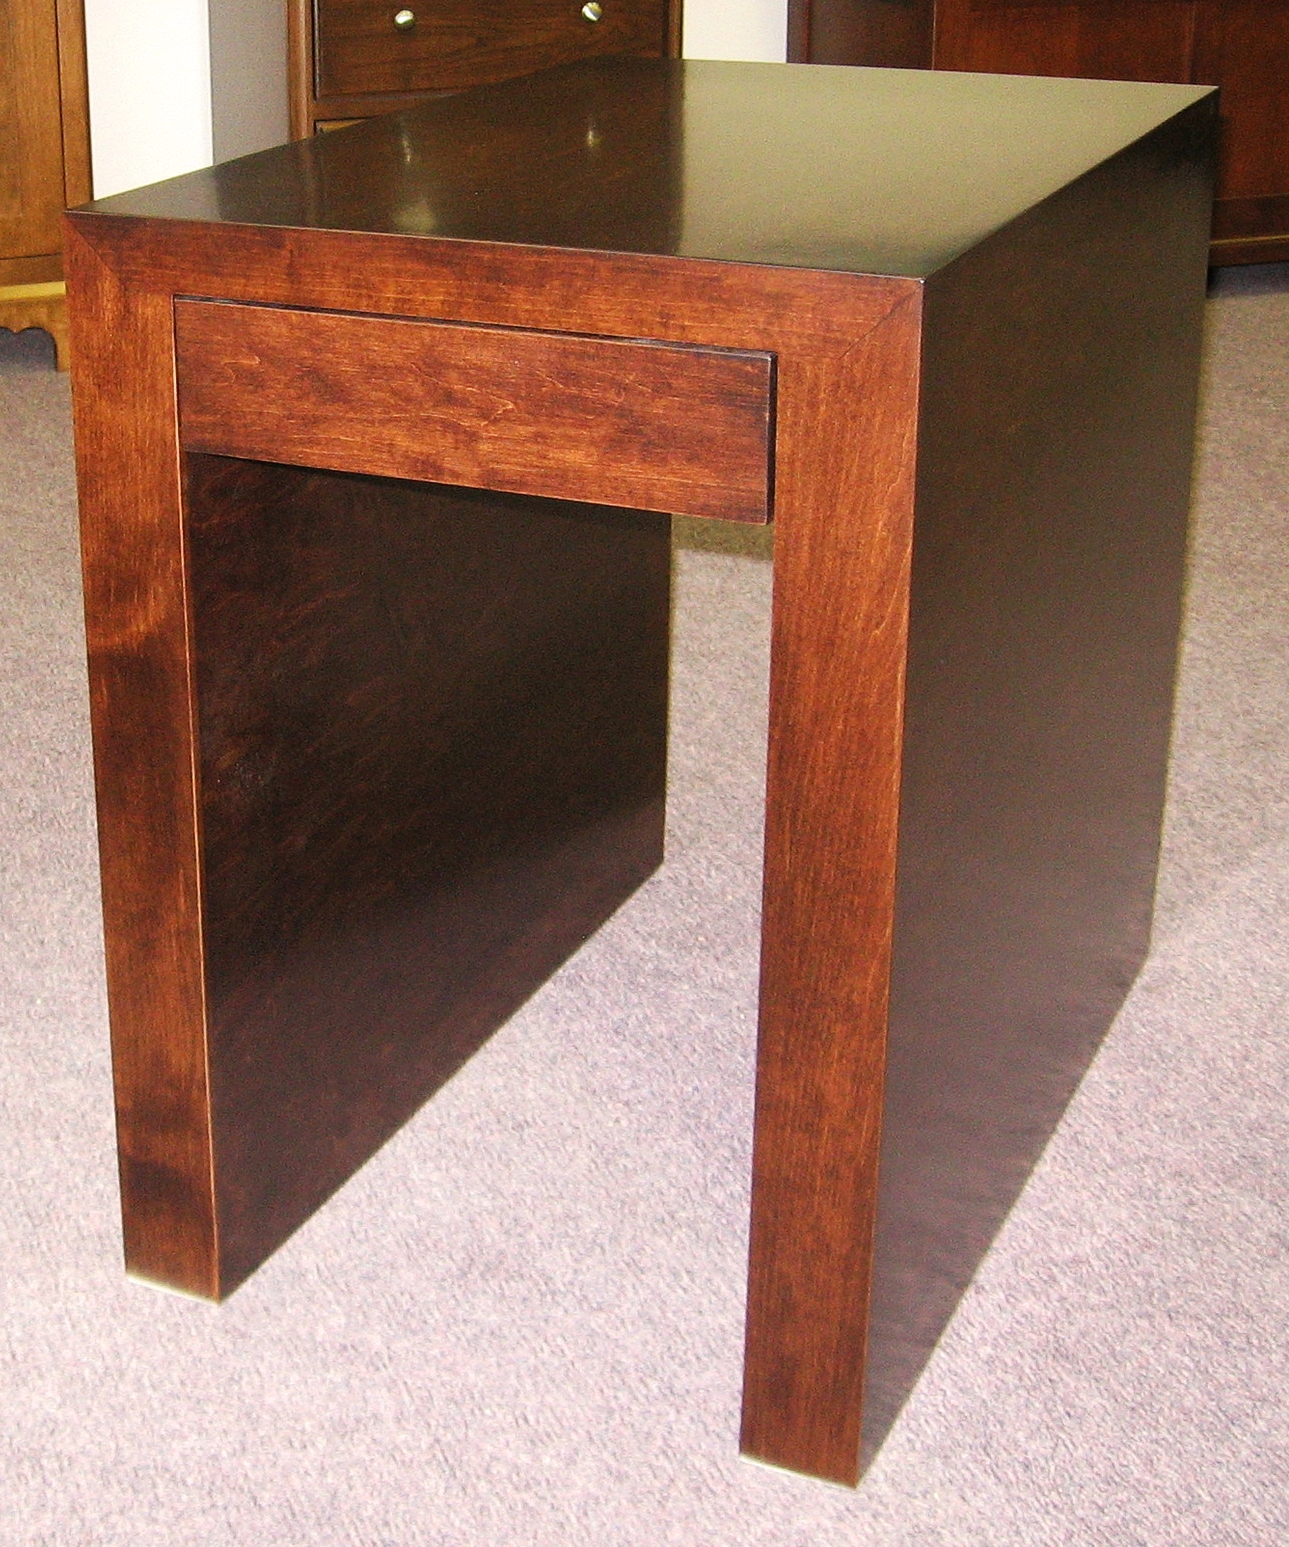 minimal-modern-side-table-with-single-drawer.JPG